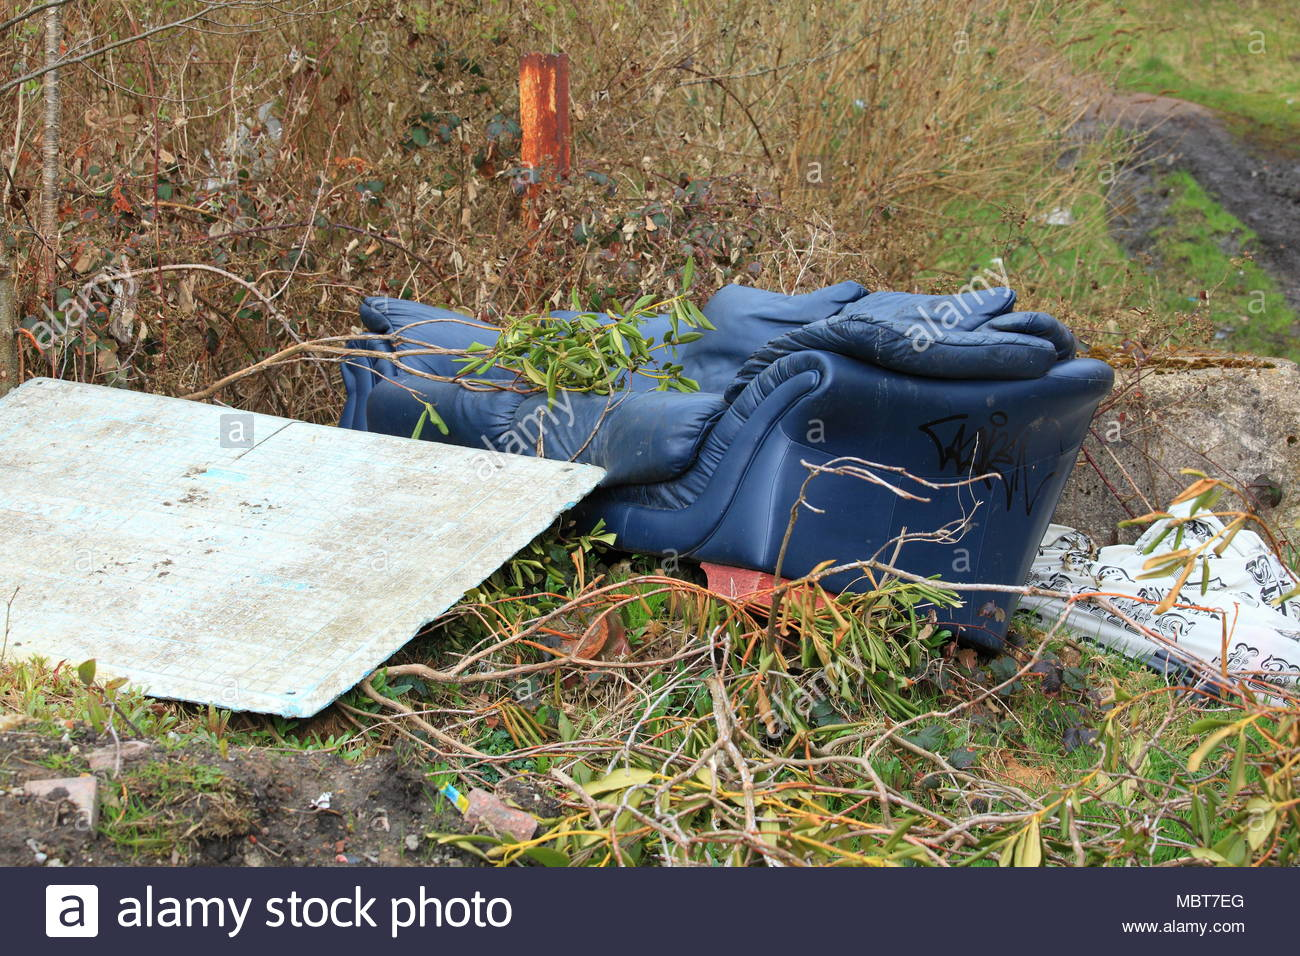 A sofa dumped on recreational ground along the canal in Staybridge Cheshire Tameside England - Stock Image